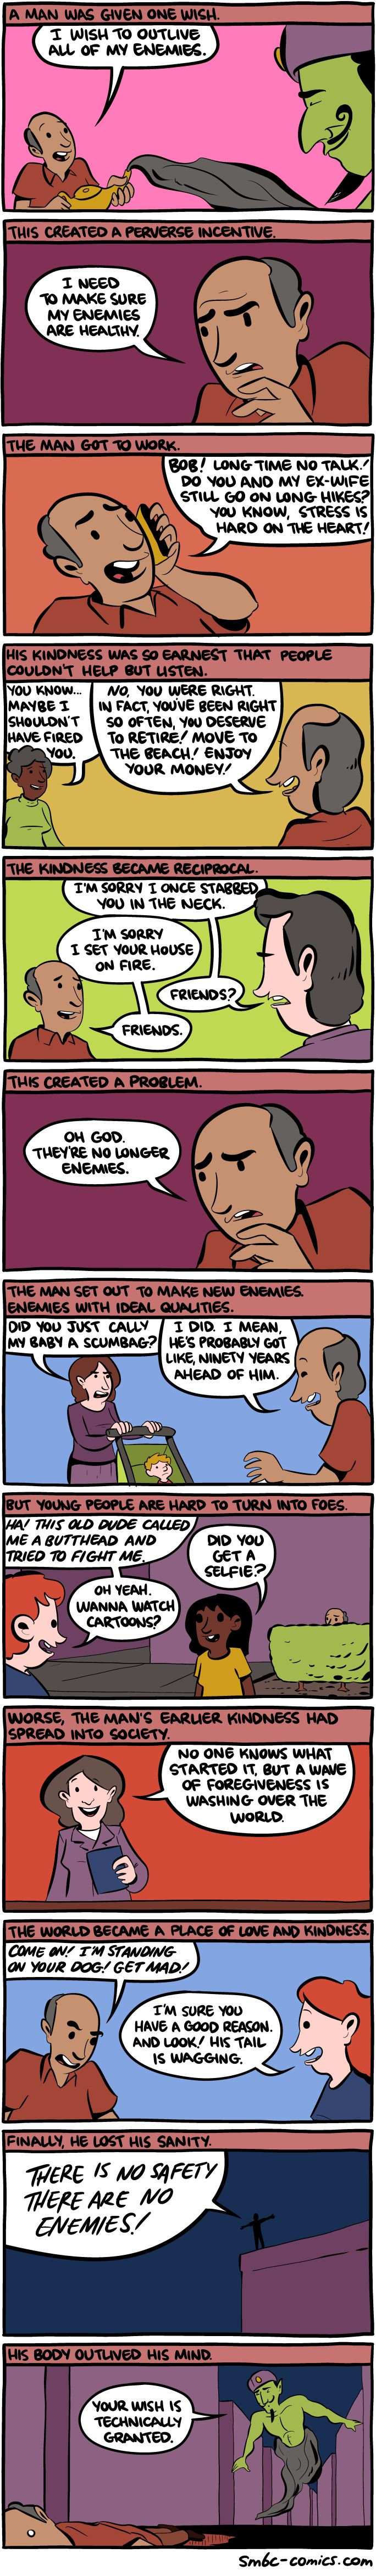 Saturday Morning Breakfast Cereal - One Wish and outliving the enemy.